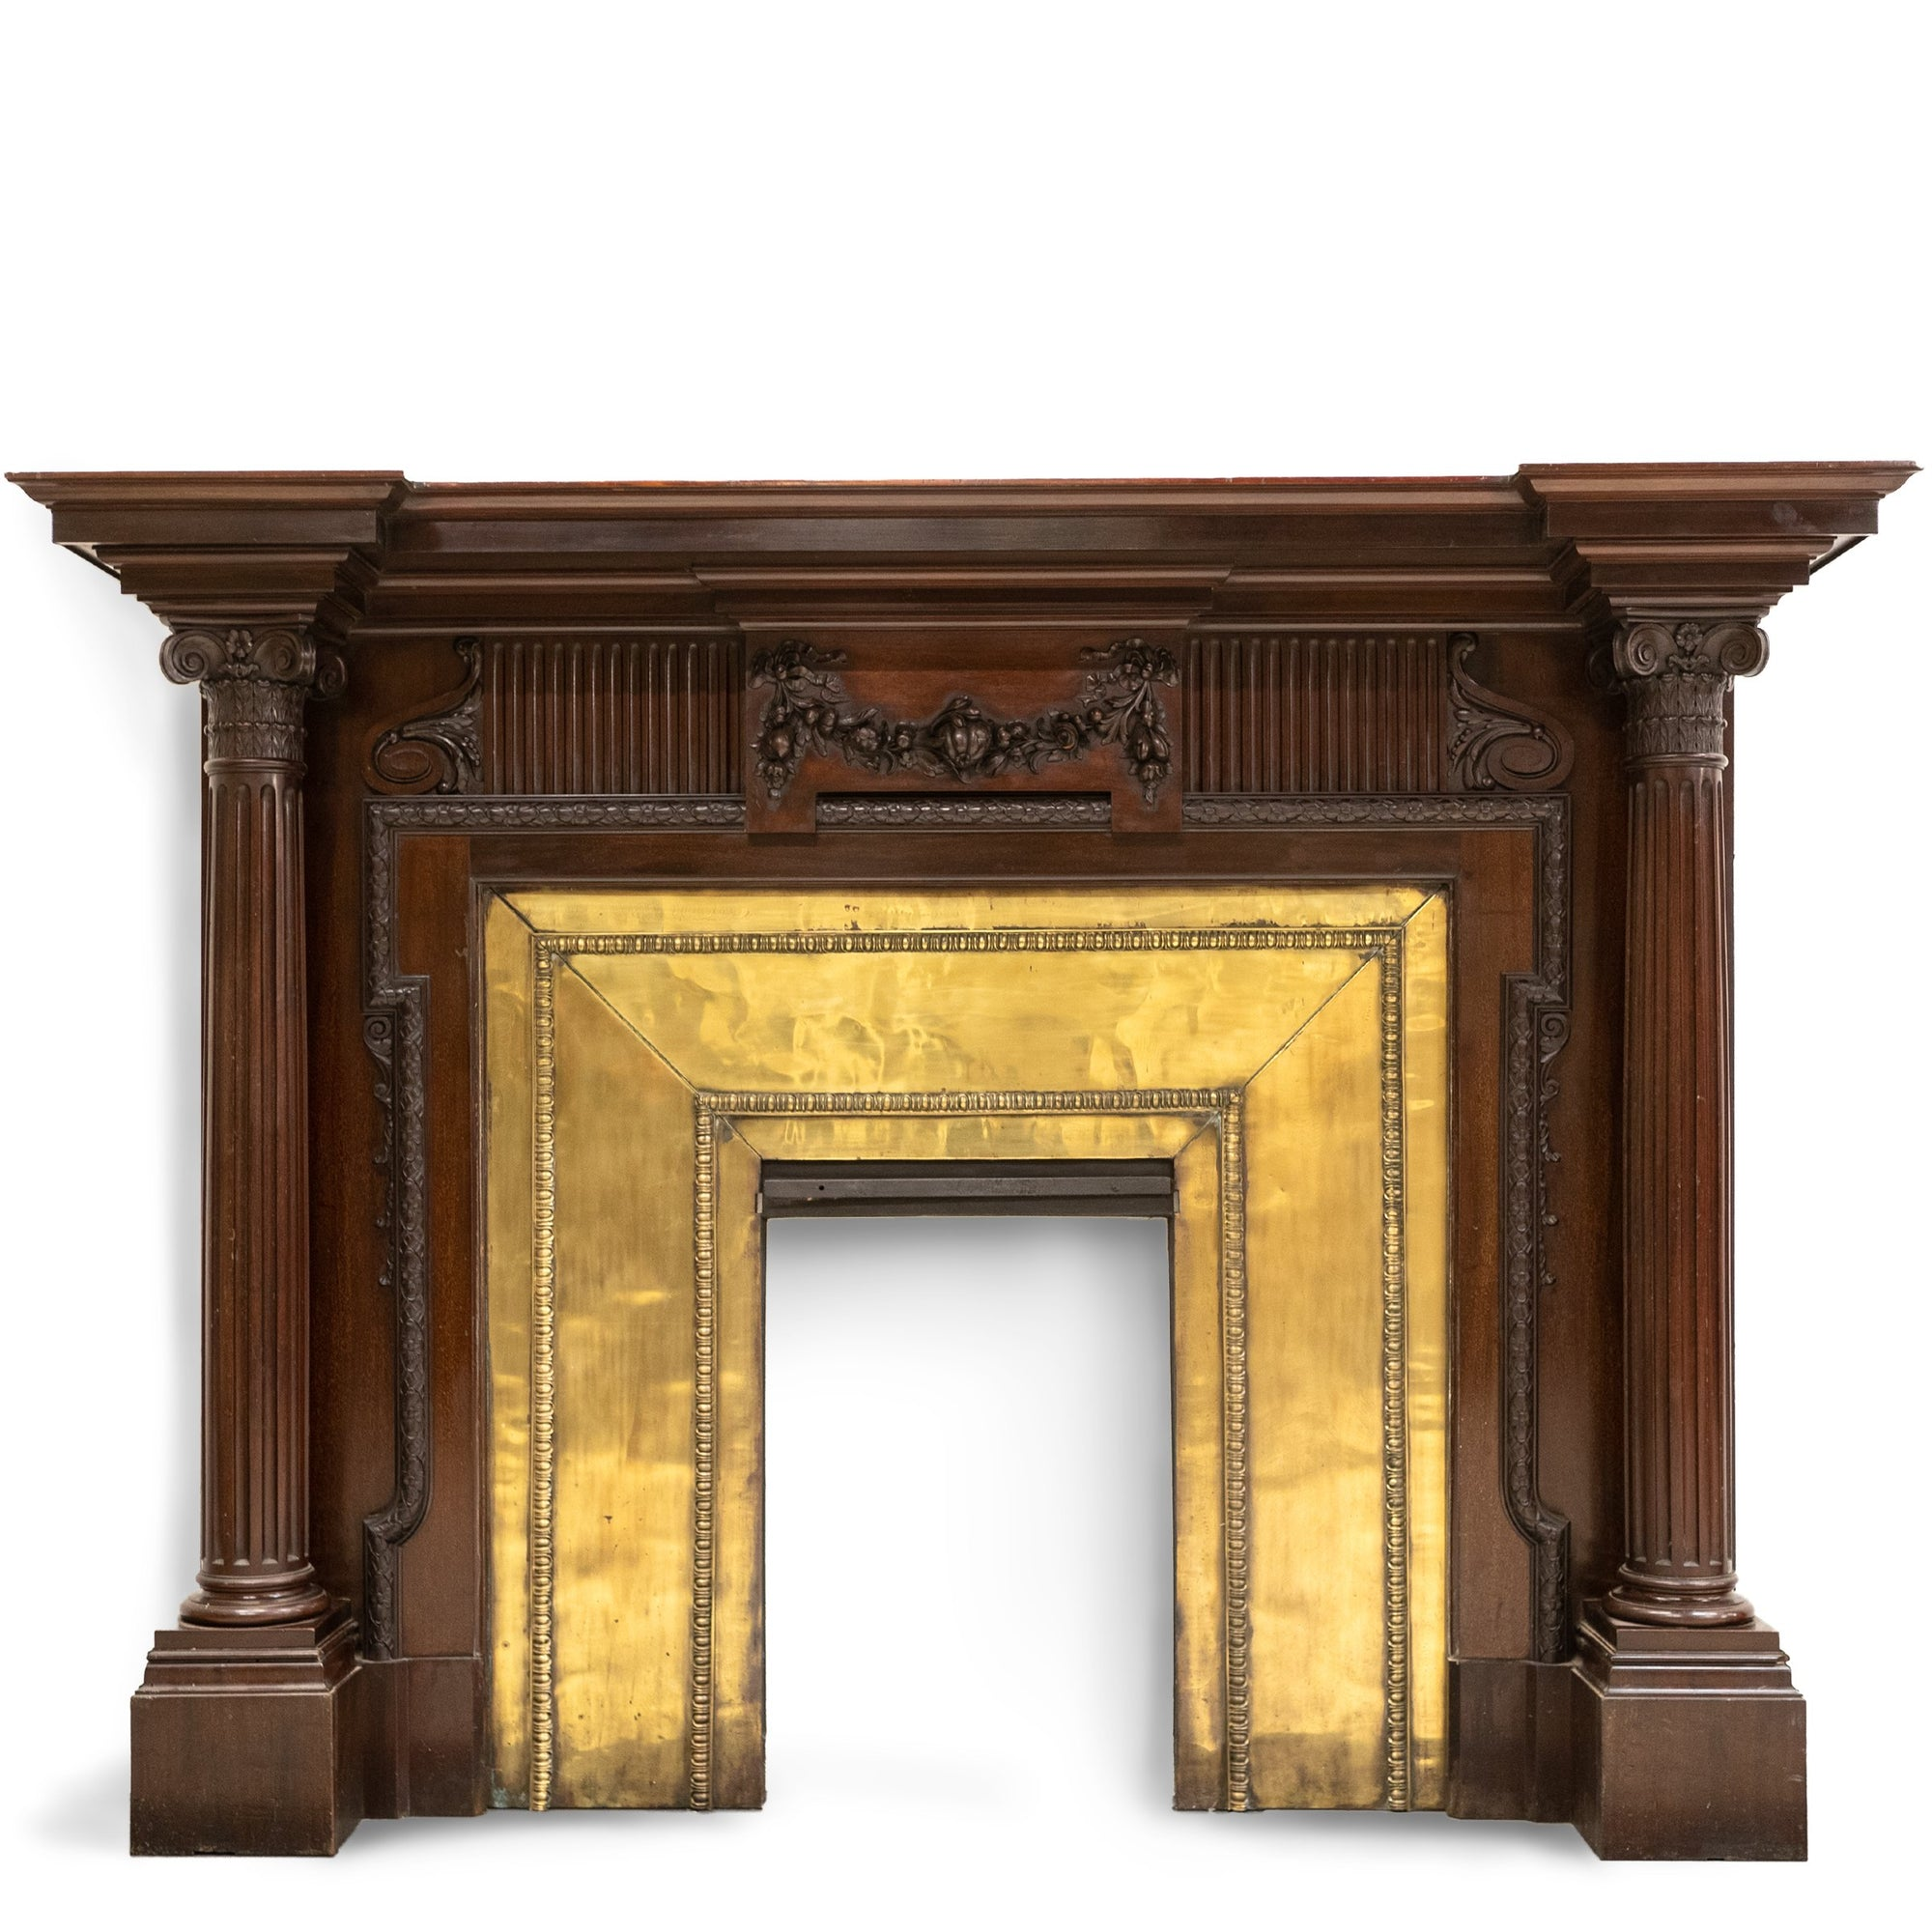 Antique Carved Mahogany Surround with Decorative Brass Insert | The Architectural Forum?id=27970908520519